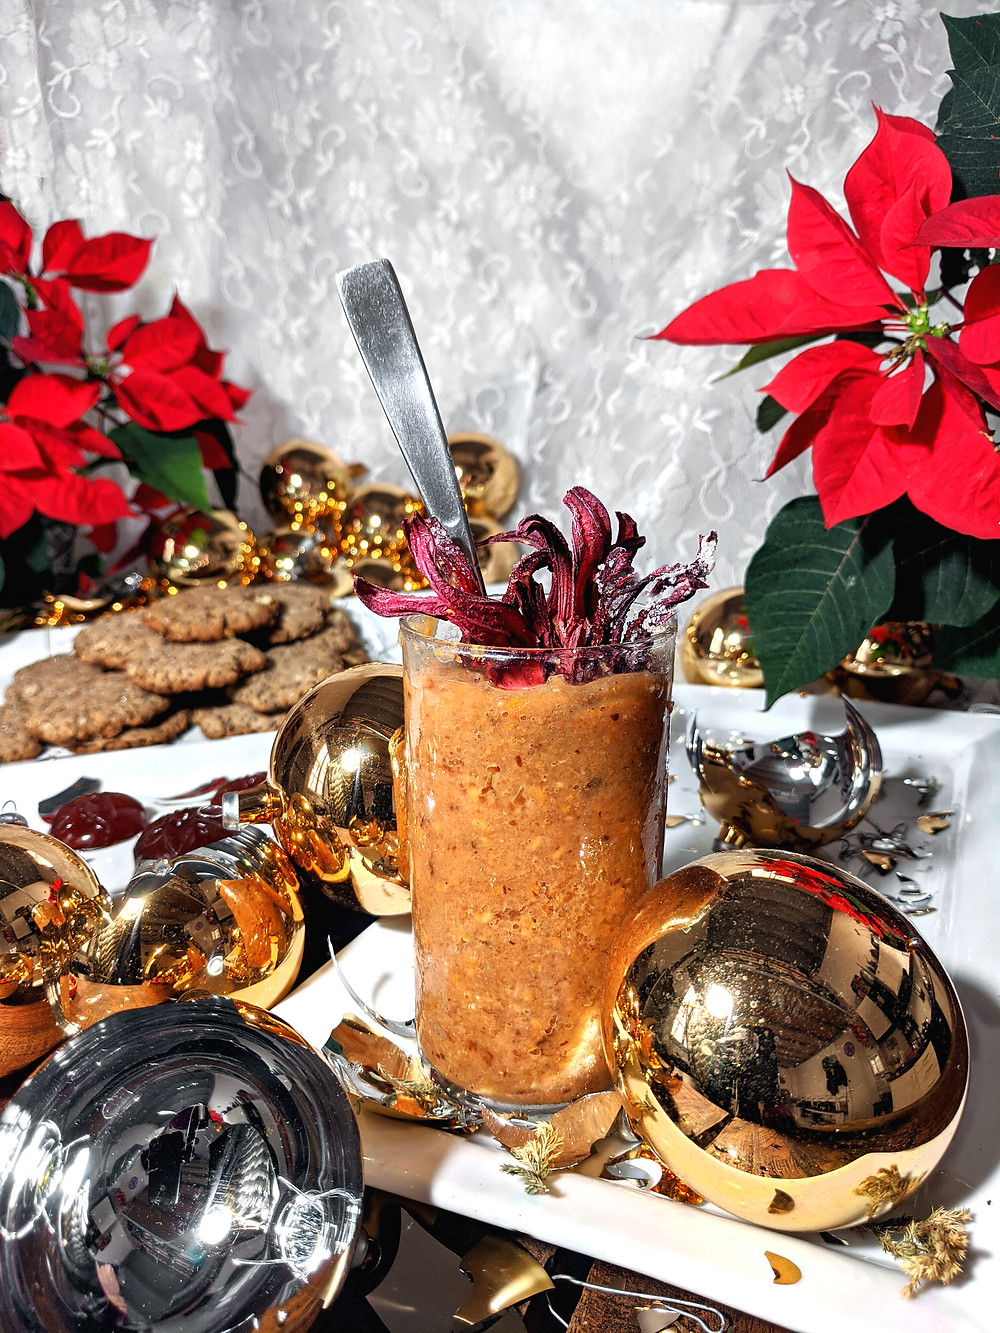 Ponche Granita, photographed by Tim @ Pinchido.  A glass of a reddish/beige slush sits among classic golden broken christmas ornaments with shards of glass covering the trays of cookies and ponche gummies.